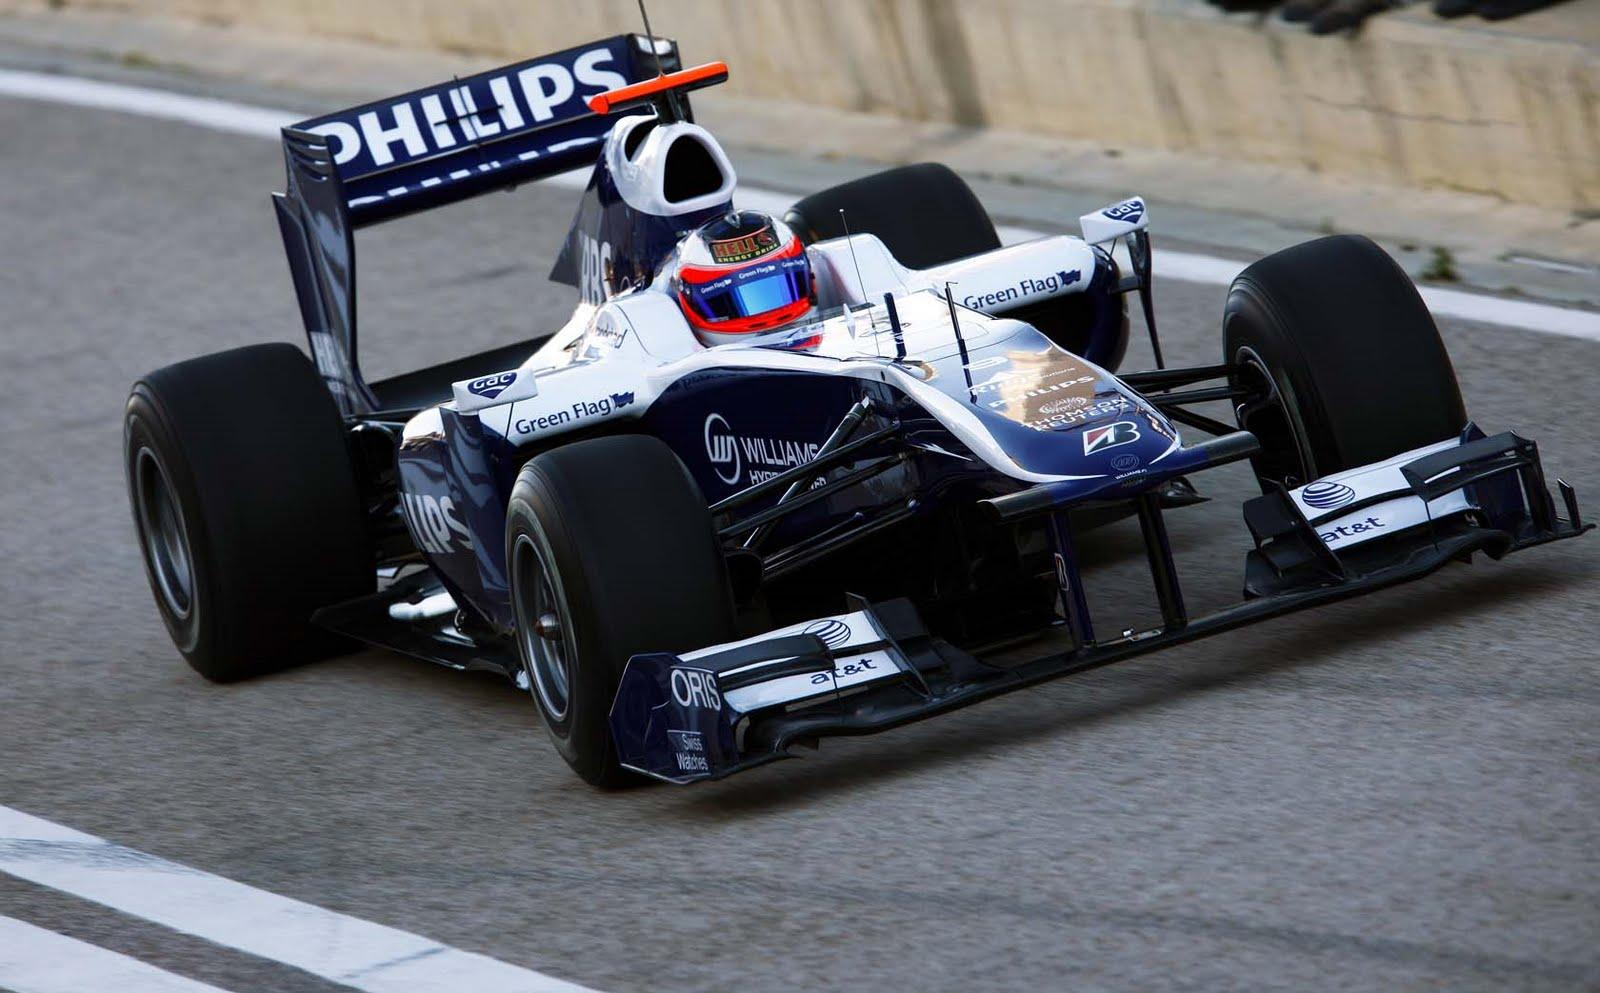 2010-Williams-FW32-Cosworth-Image-06.jpg